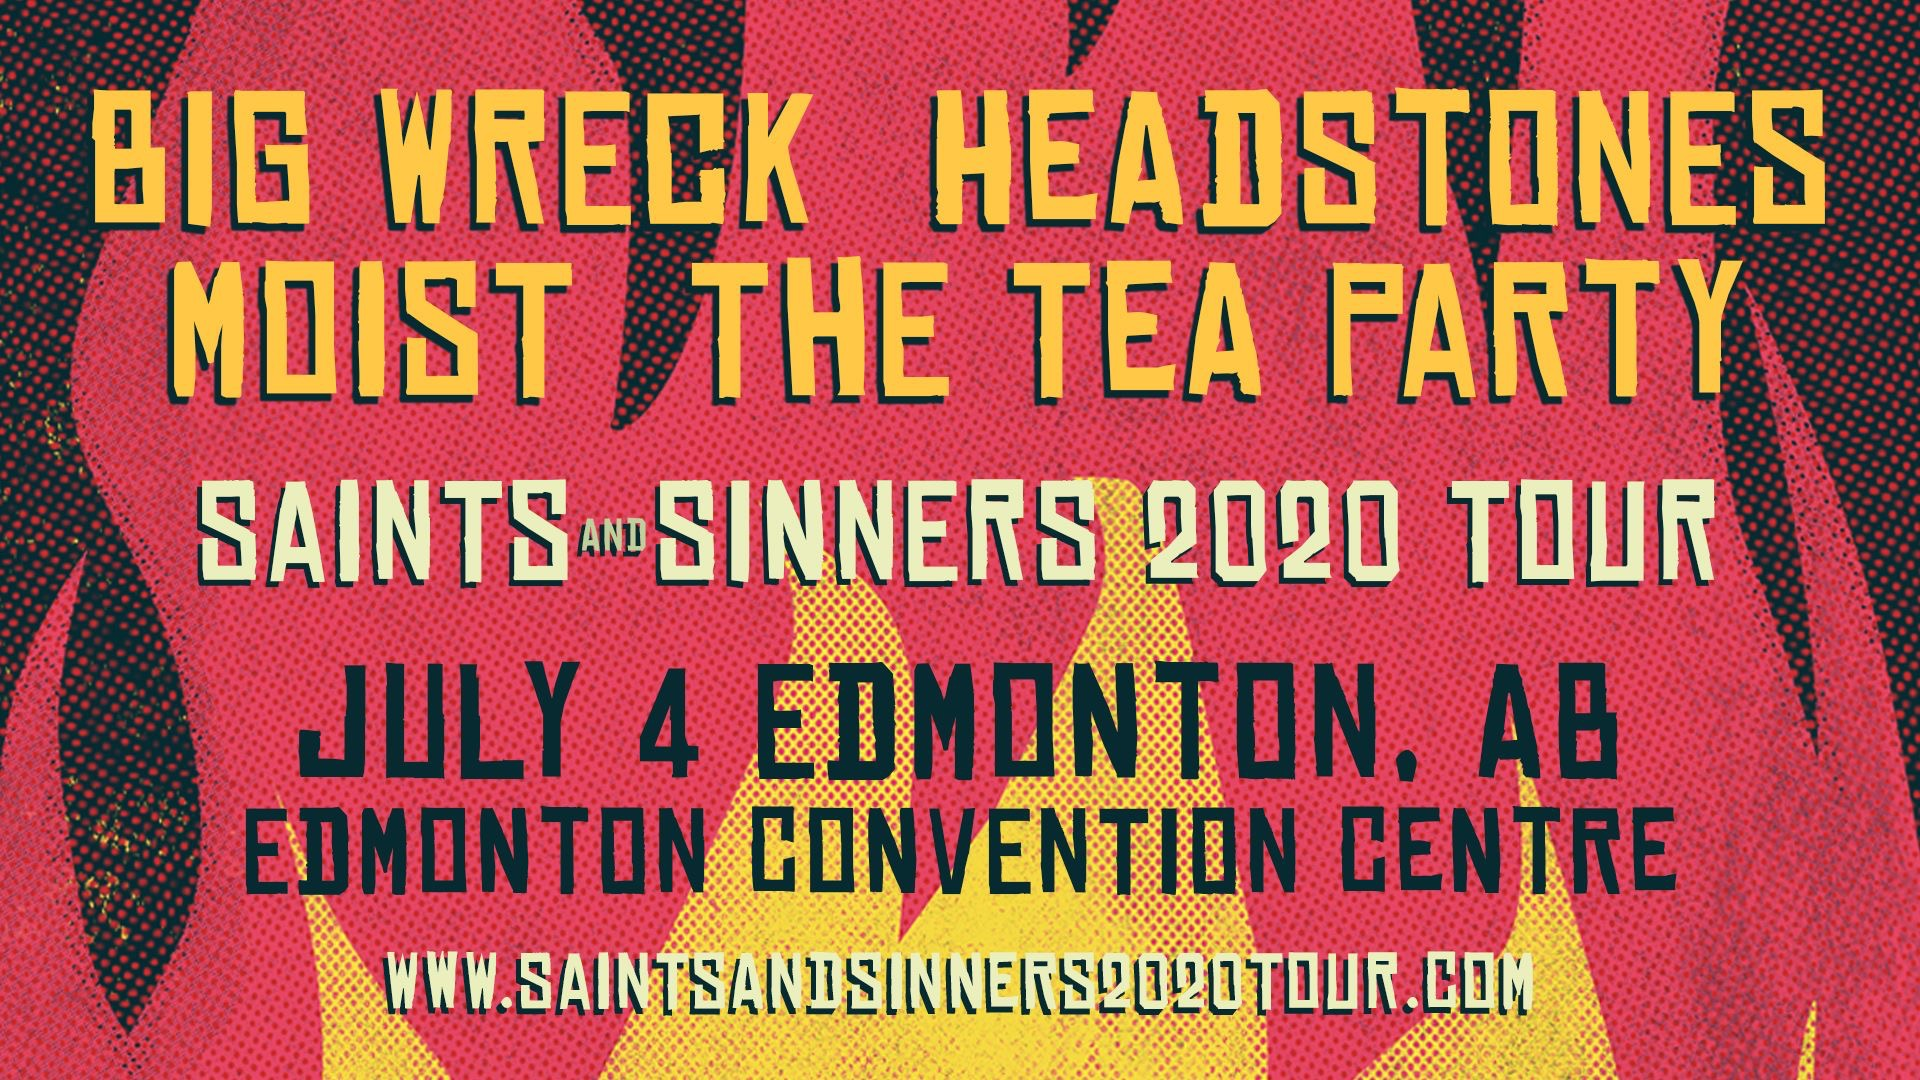 SAINTS AND SINNERS TOUR 2020 FEATURING Big Wreck - Headstones - Moist - The Tea Party